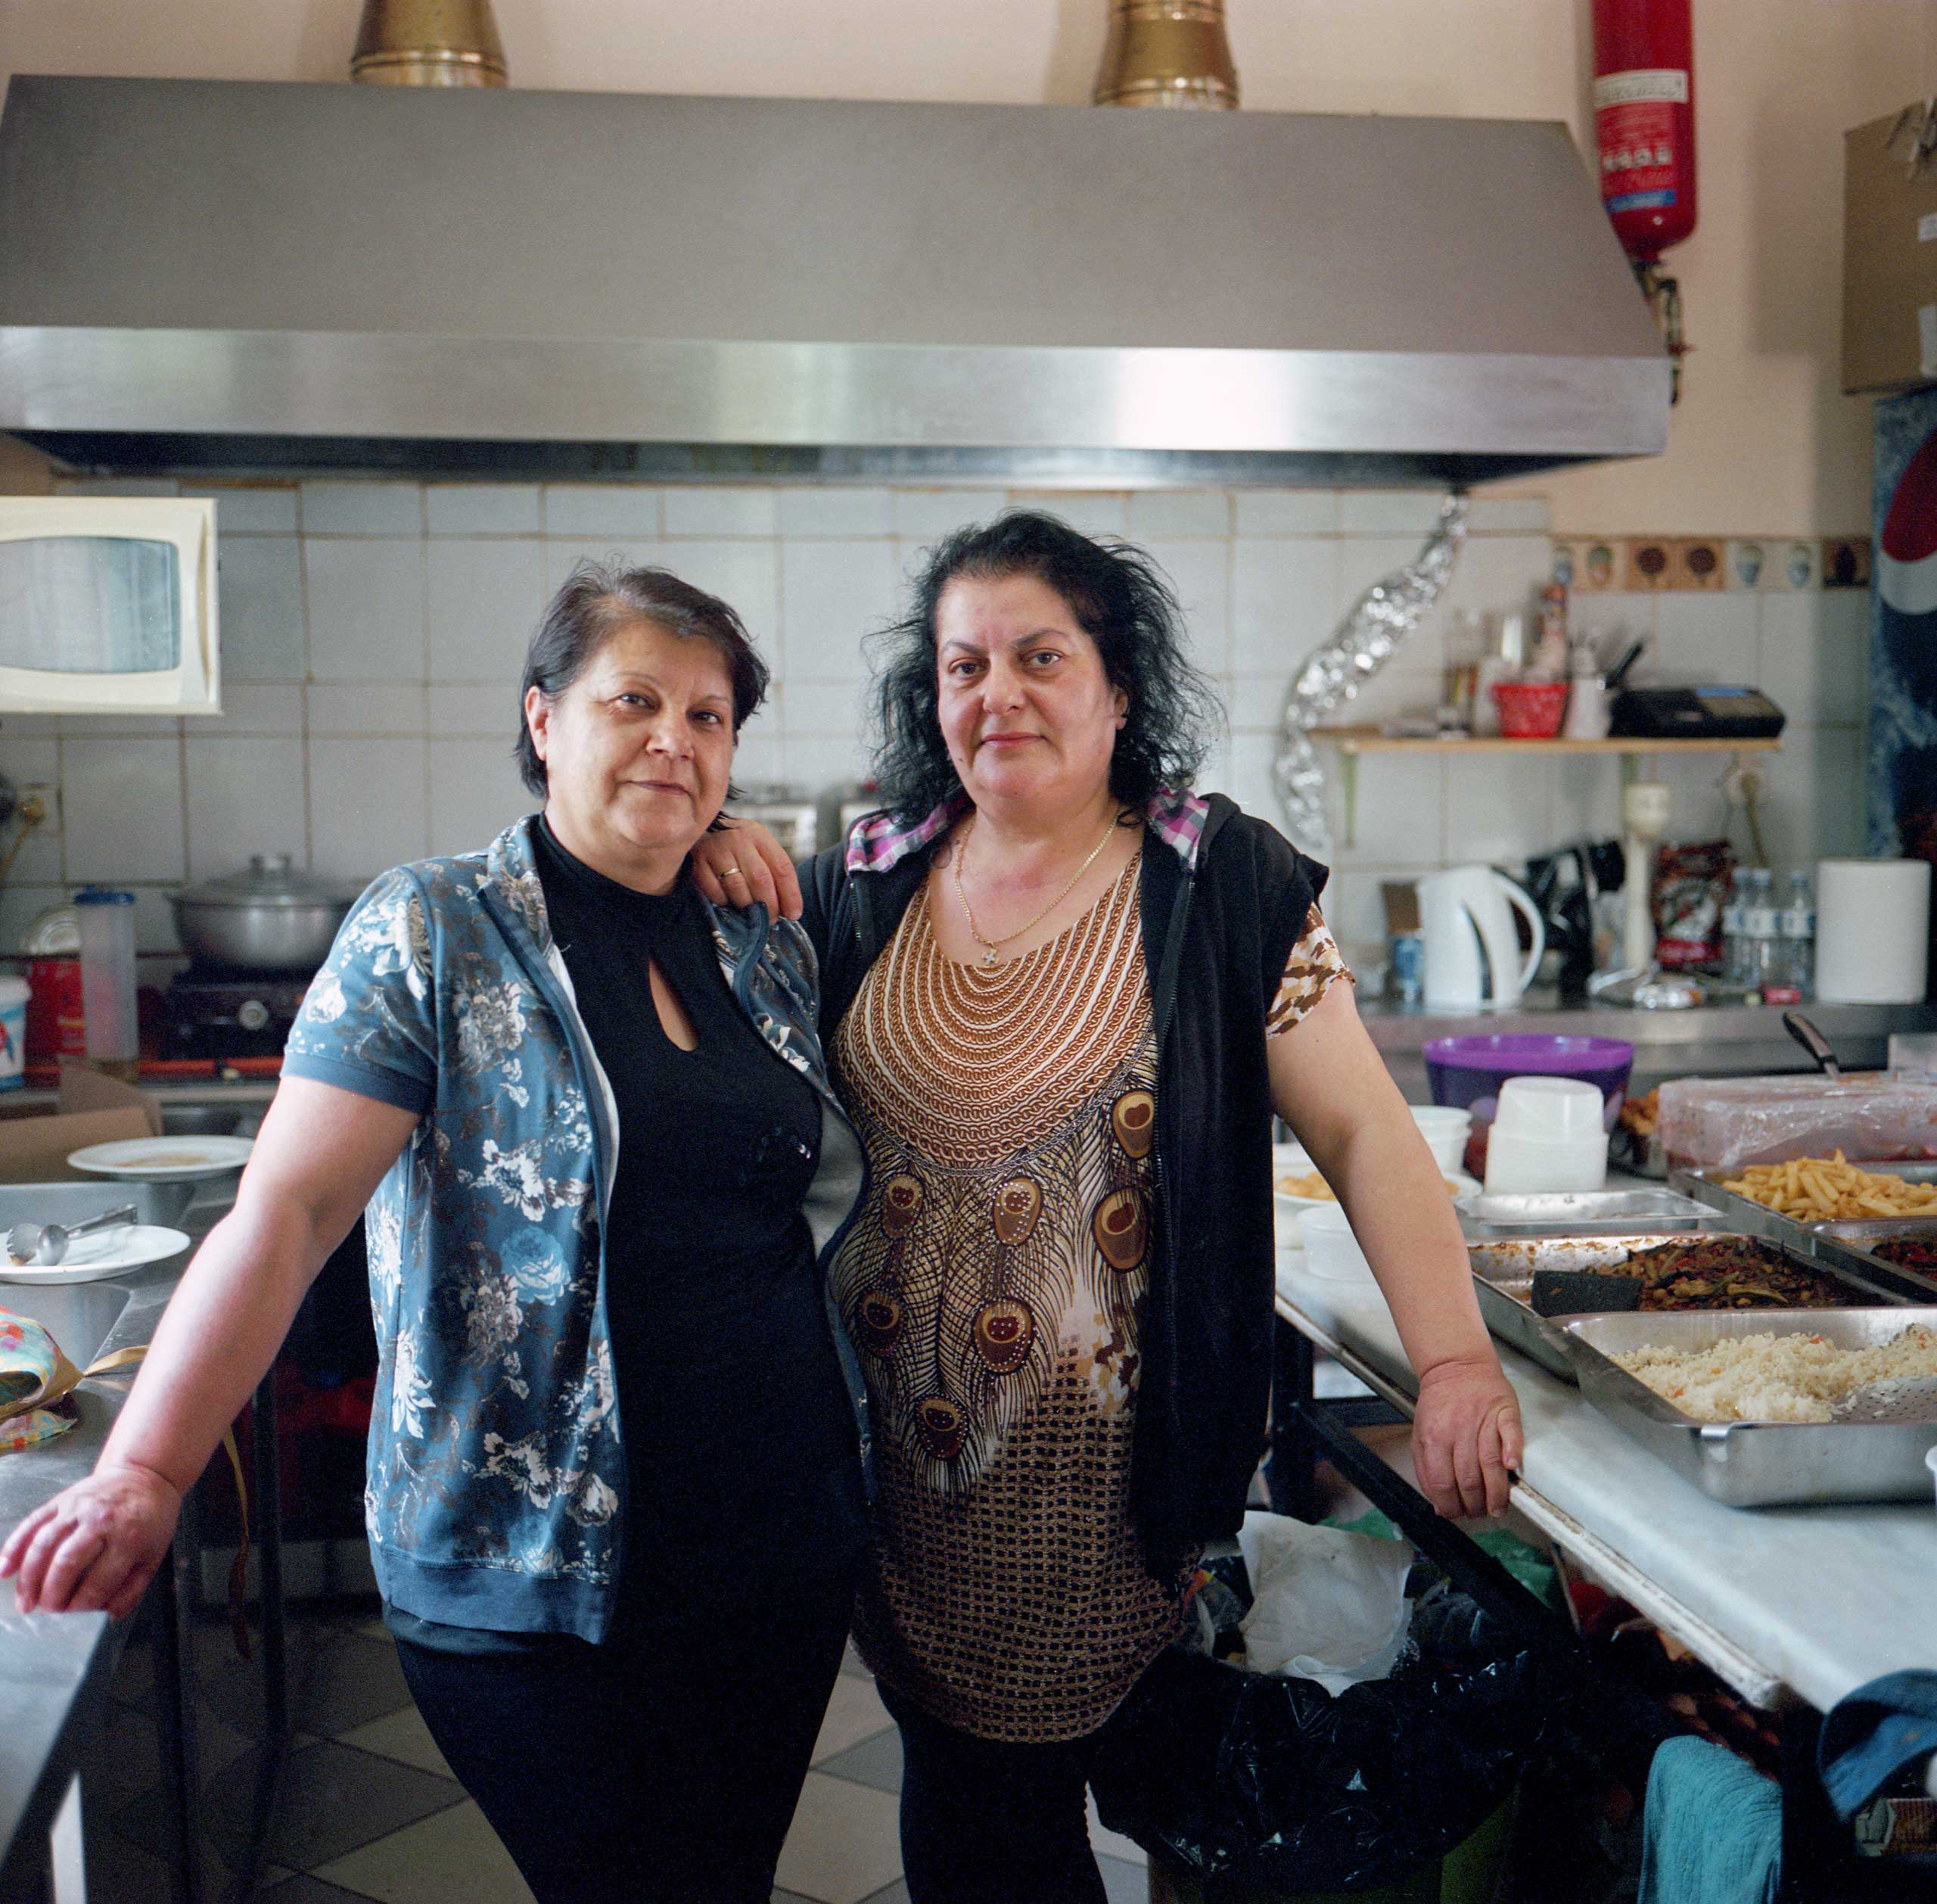 <b>Nopi Pantelidou (left) and Gianna Konstantinidou, villagers</b> Both women work in the kitchen at a cafe in Idomeni. A small canteen that used to serve local residents and others passing through the Idomeni train station is now overflown with refugees. Idomeni, Greece, April 2016.